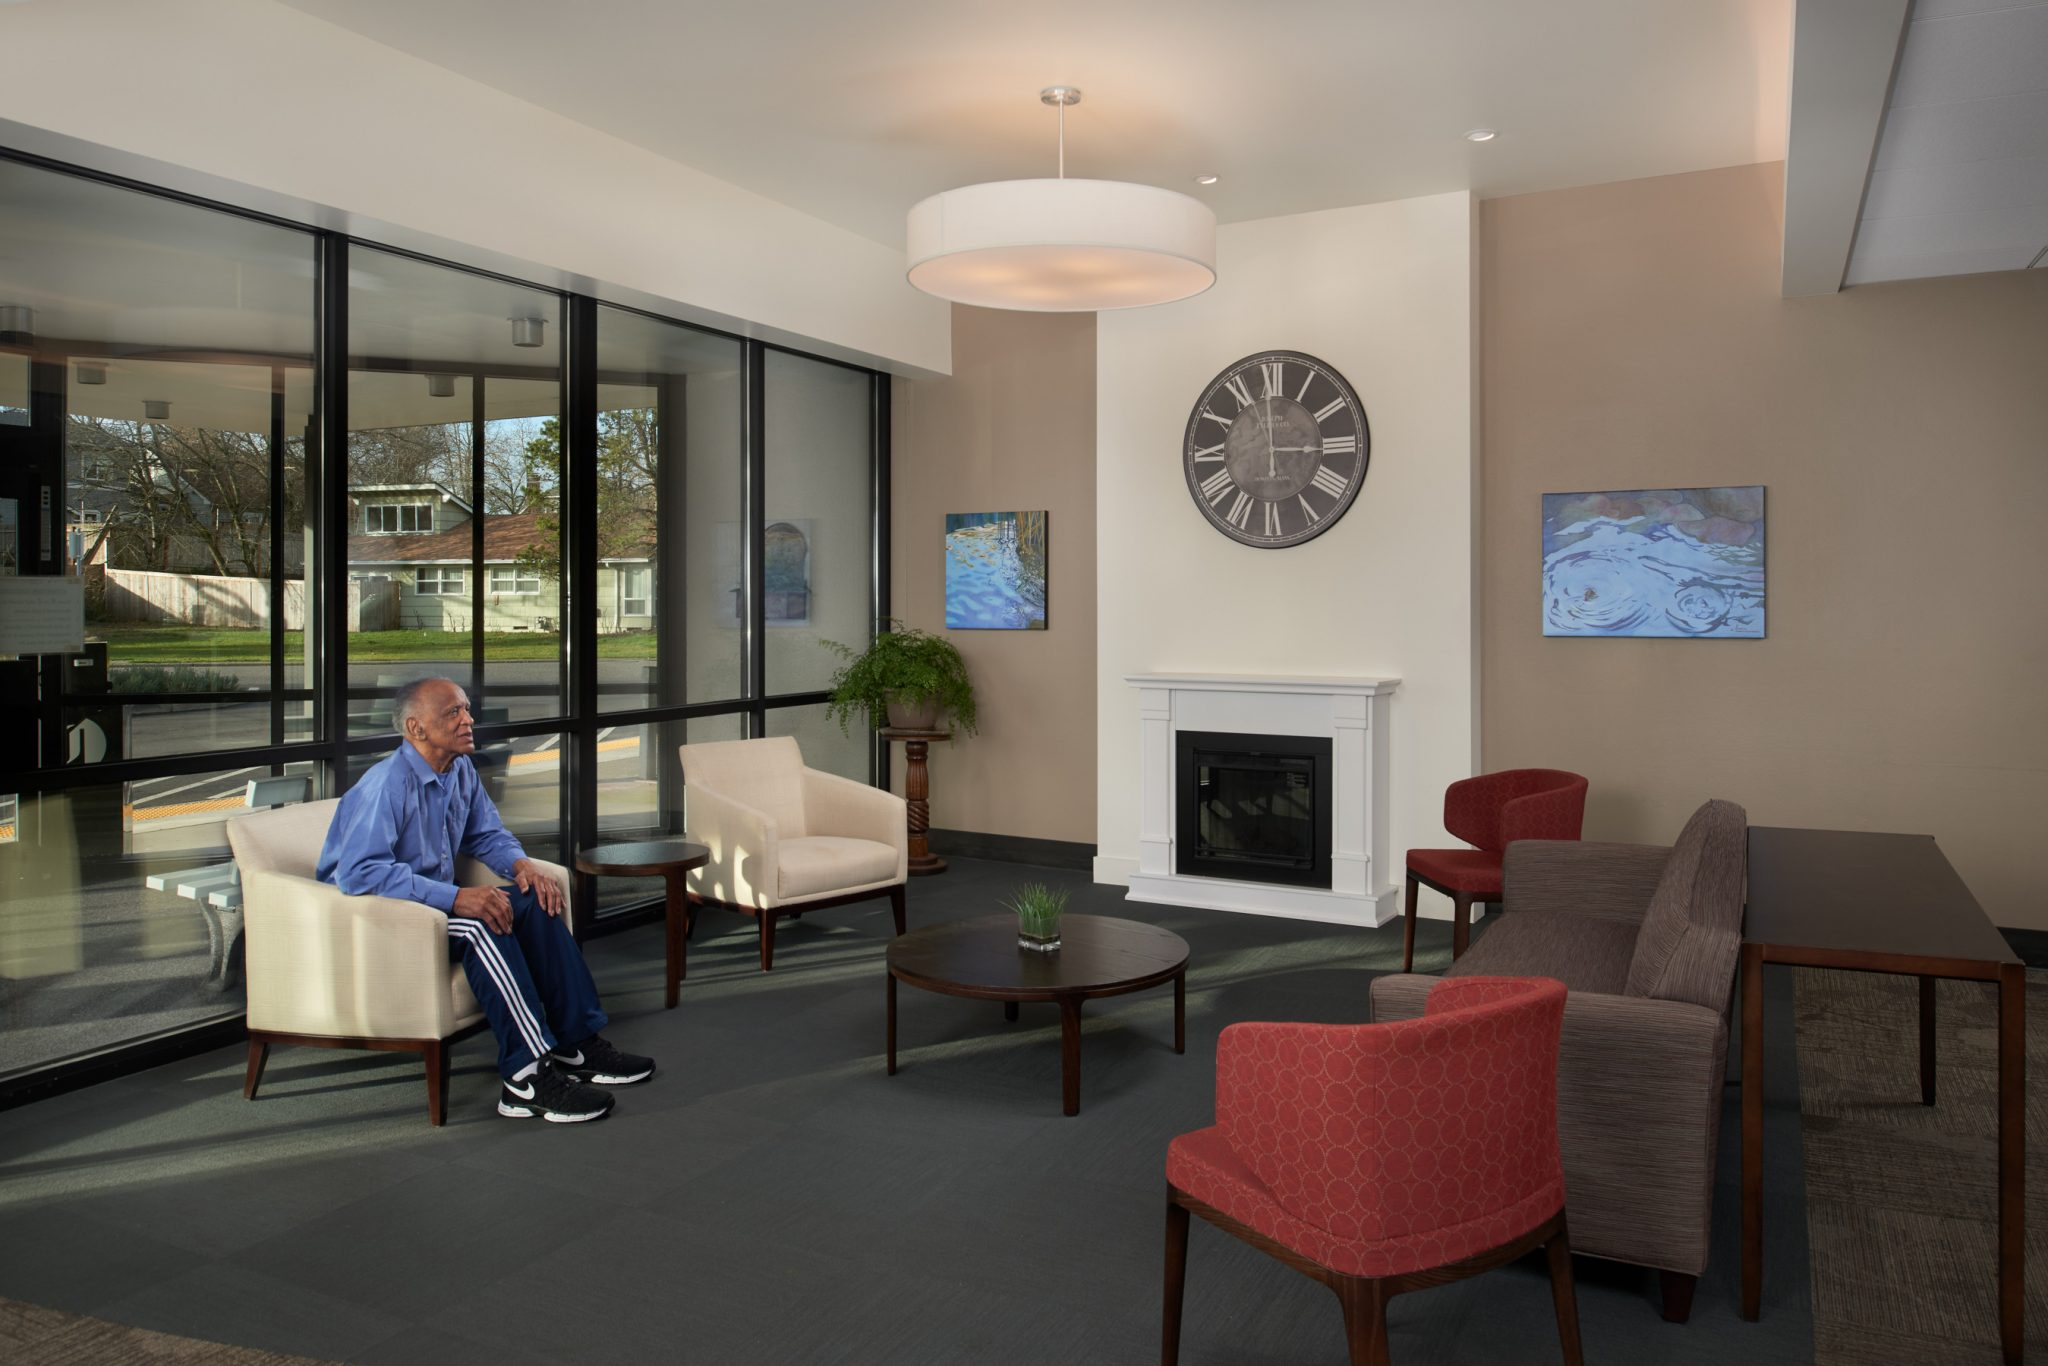 ... The Remodeled Lobby Received New Finishes, Acoustic Treatment,  Lighting, And A Focal Fireplace In Addition To Fresh New Furniture And  Artwork.